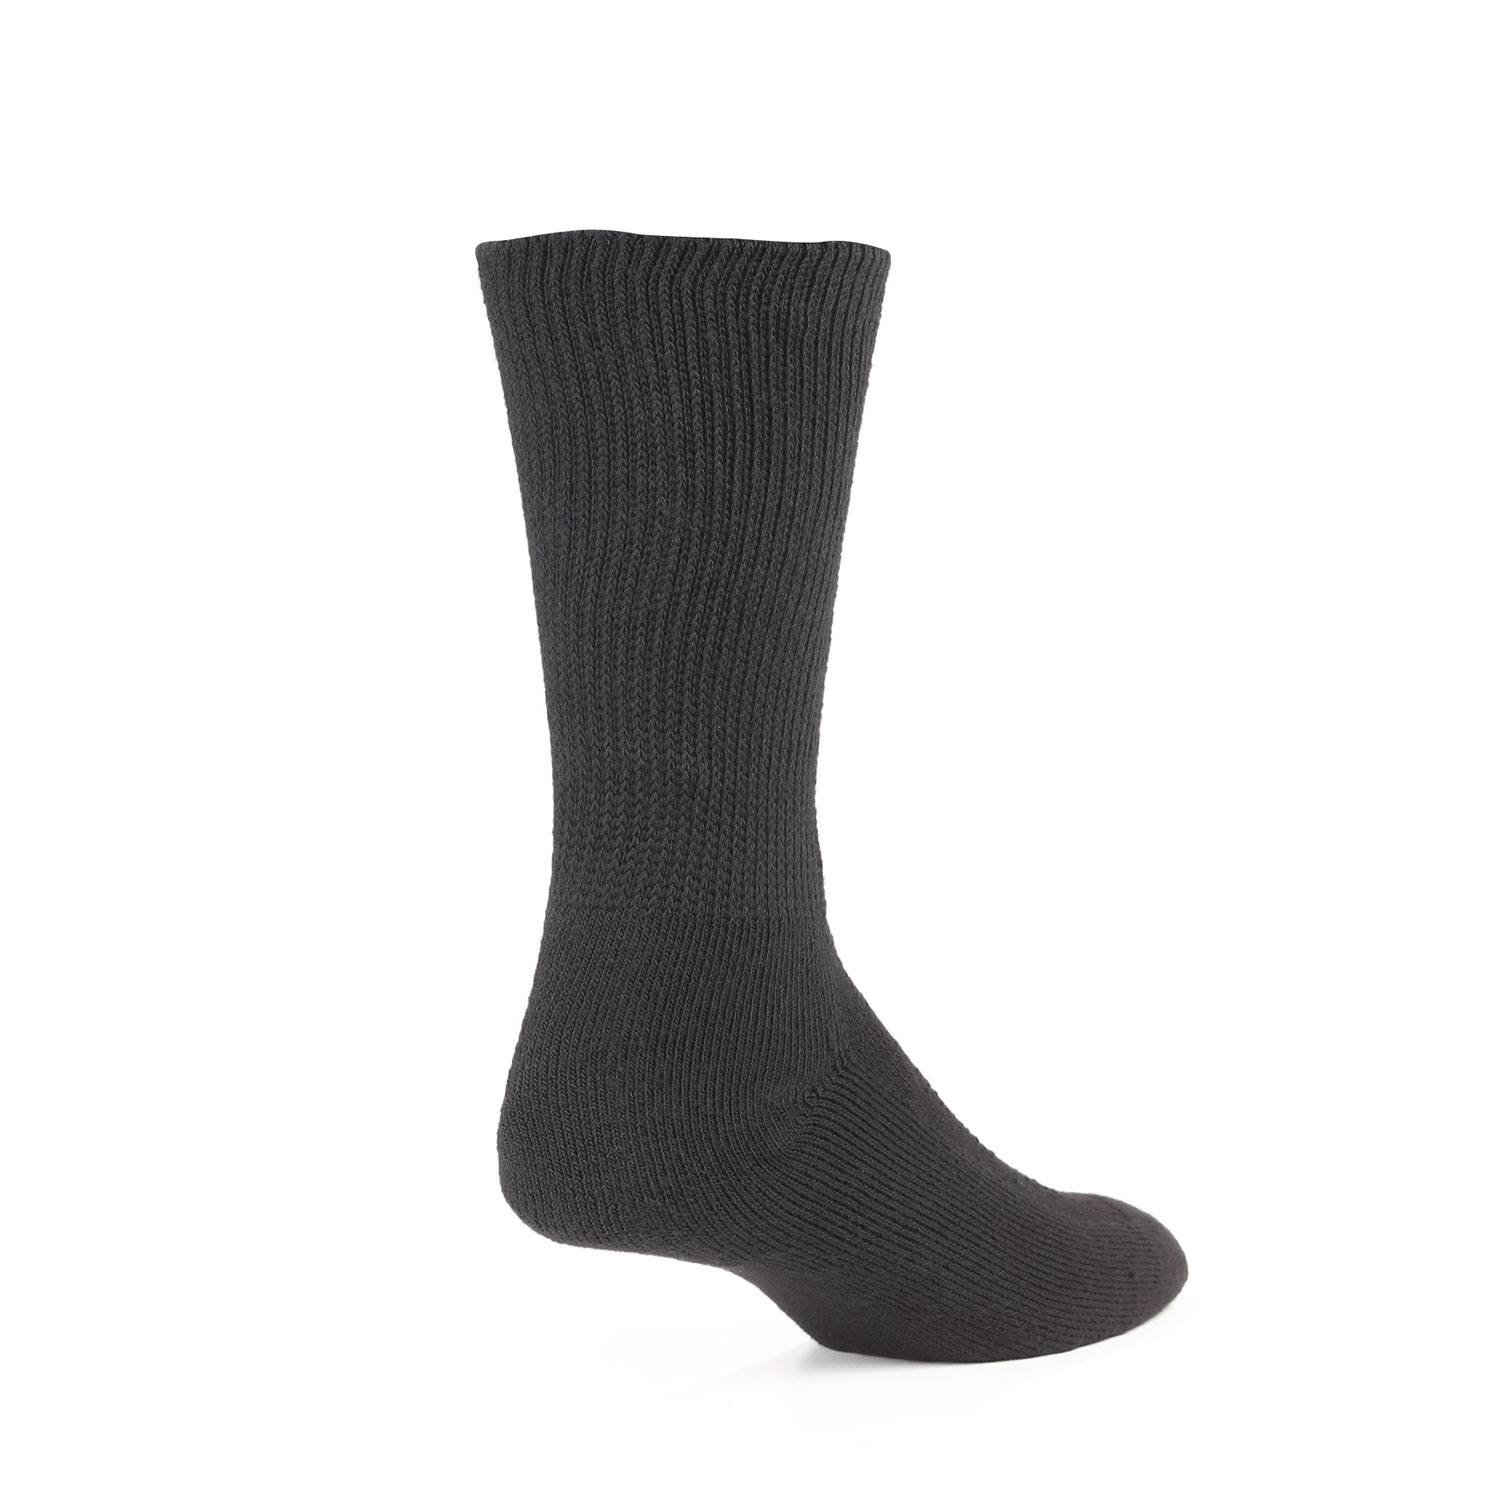 DuraCare Diabetic All Season Crew Sock (2 Pack)